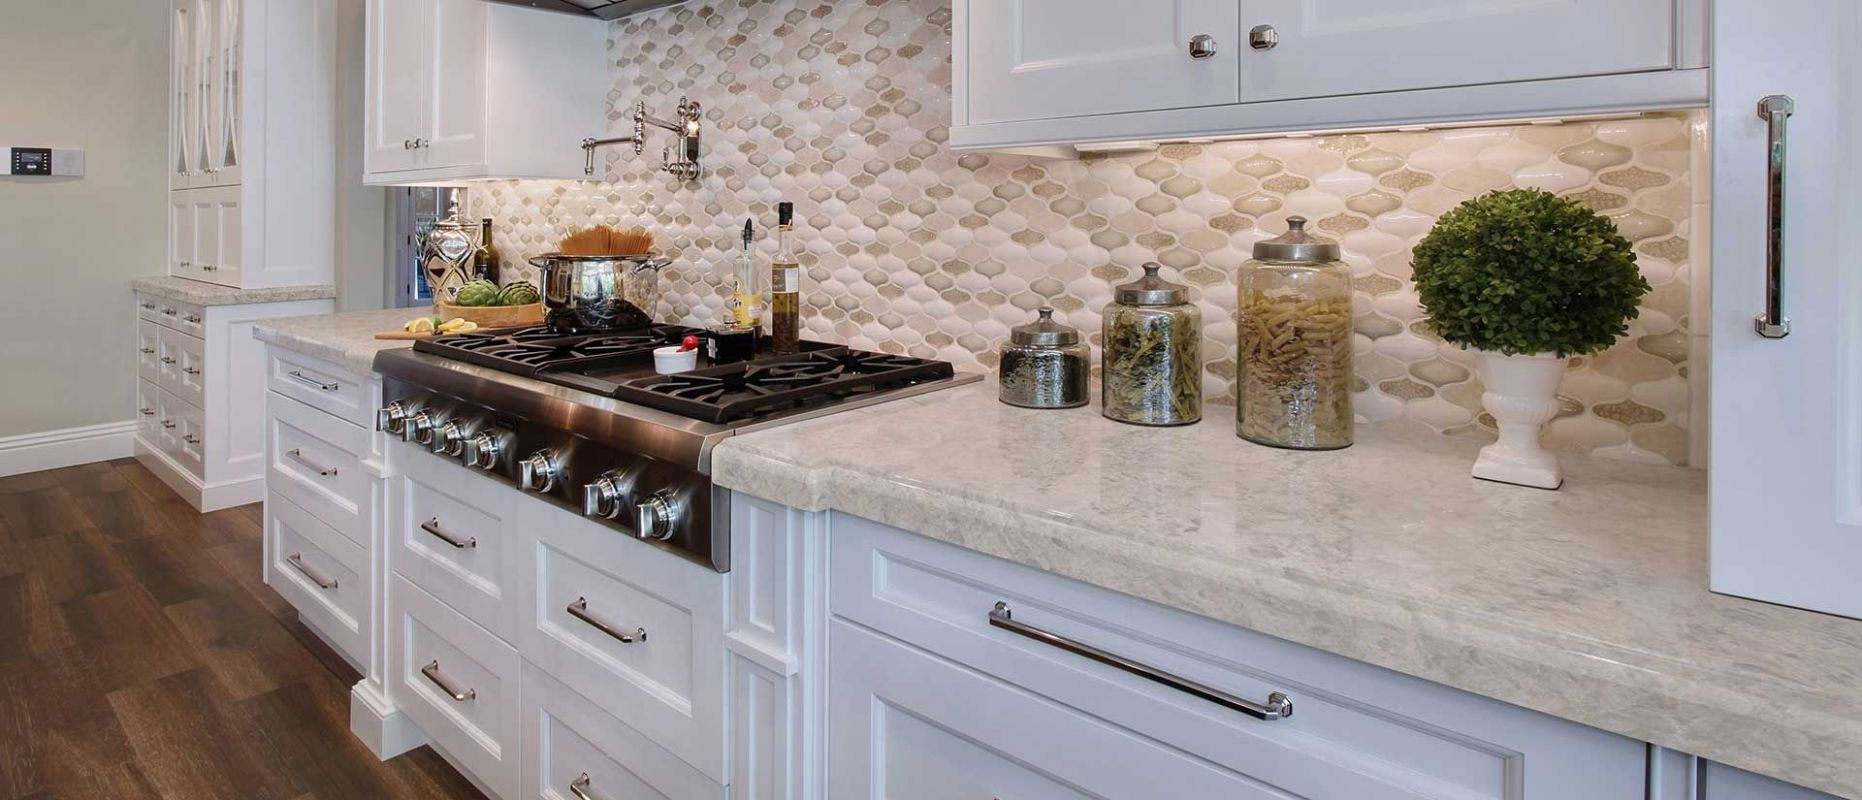 Portico Cream Quartz Slab Countertops | Q Premium NATURAL Quartz ..